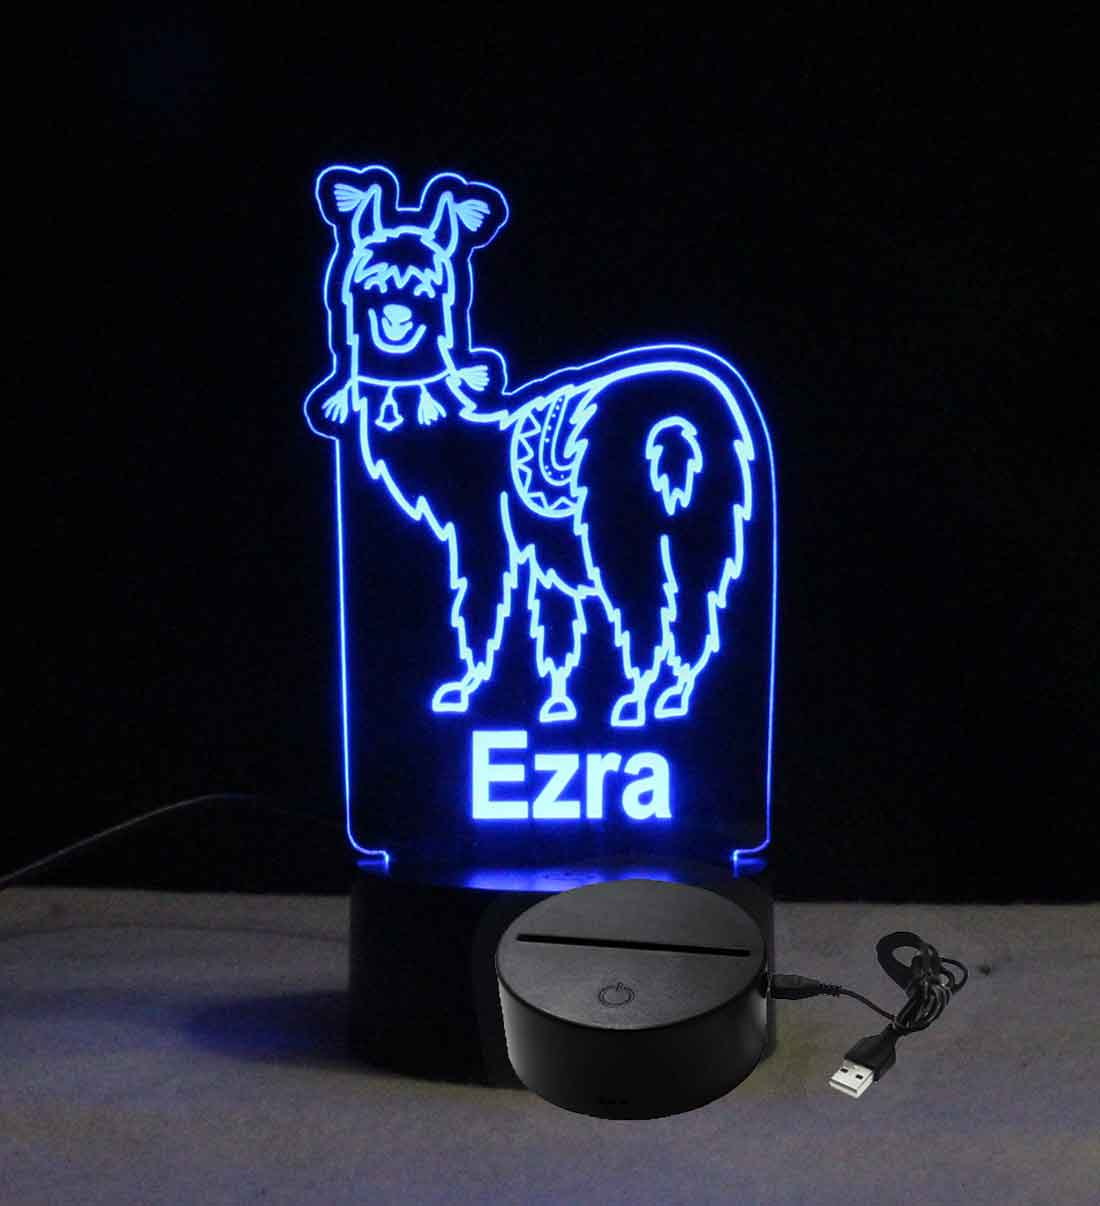 Personalized Engraved Llama Night Light - USB - 110V - Battery - Customizable